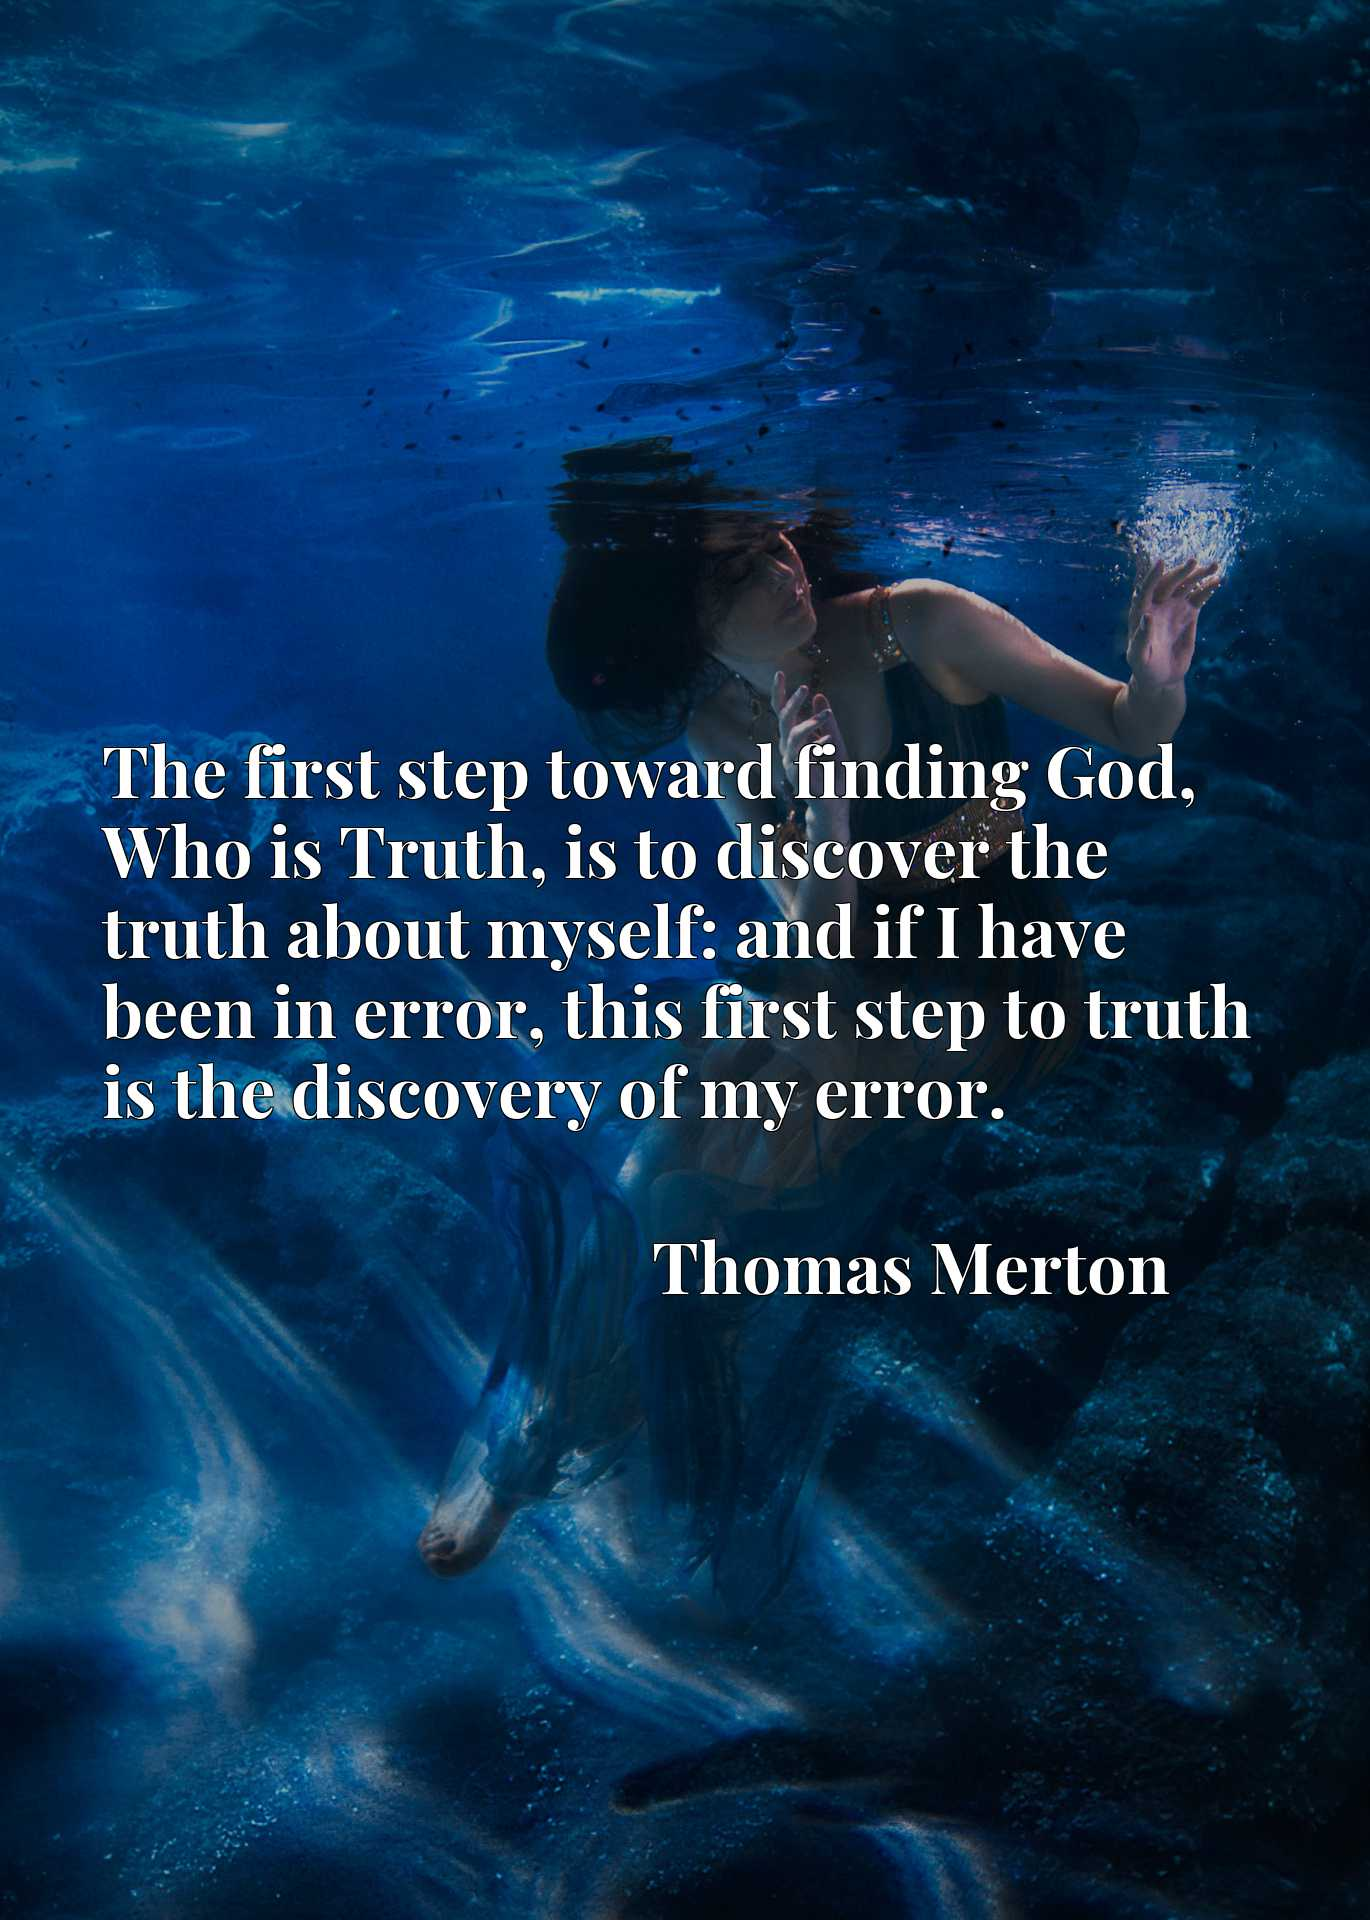 The first step toward finding God, Who is Truth, is to discover the truth about myself: and if I have been in error, this first step to truth is the discovery of my error.